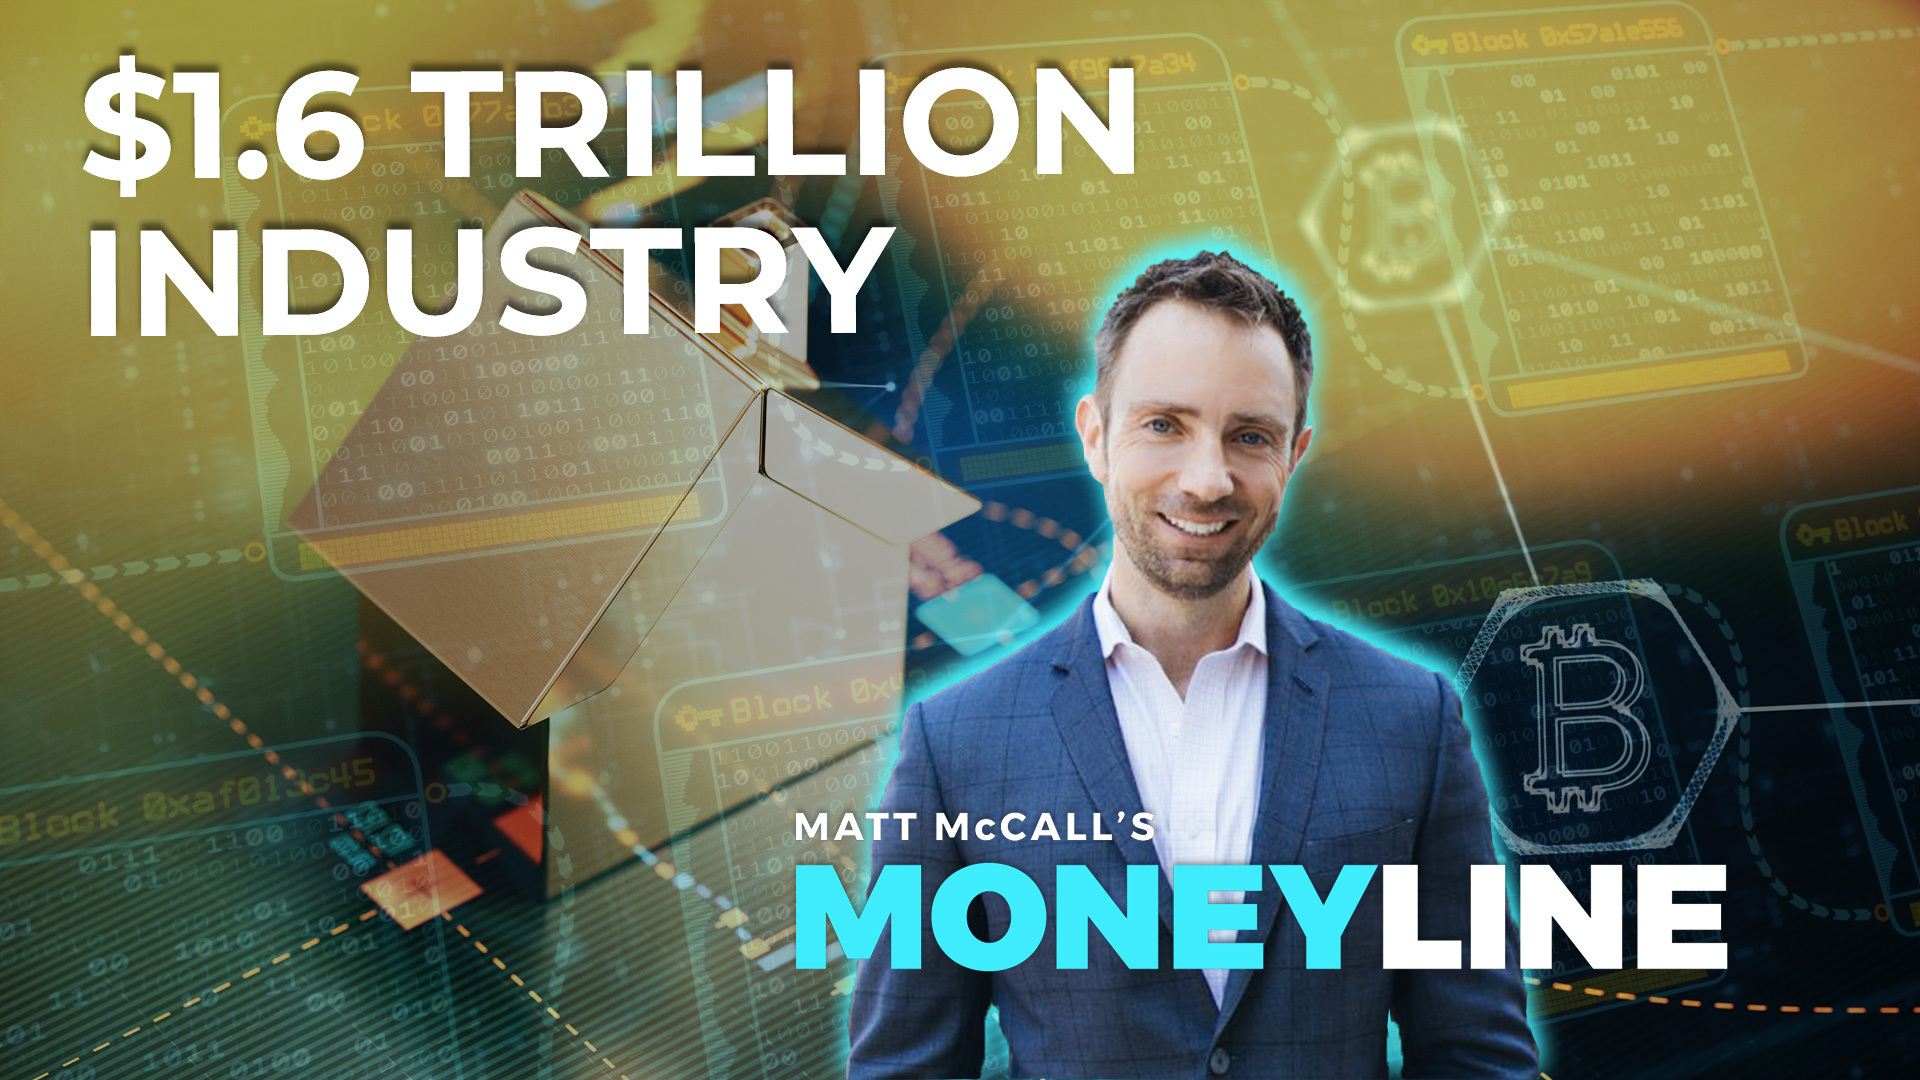 Matt McCall's Moneyline: $1.6 Trillion Industry